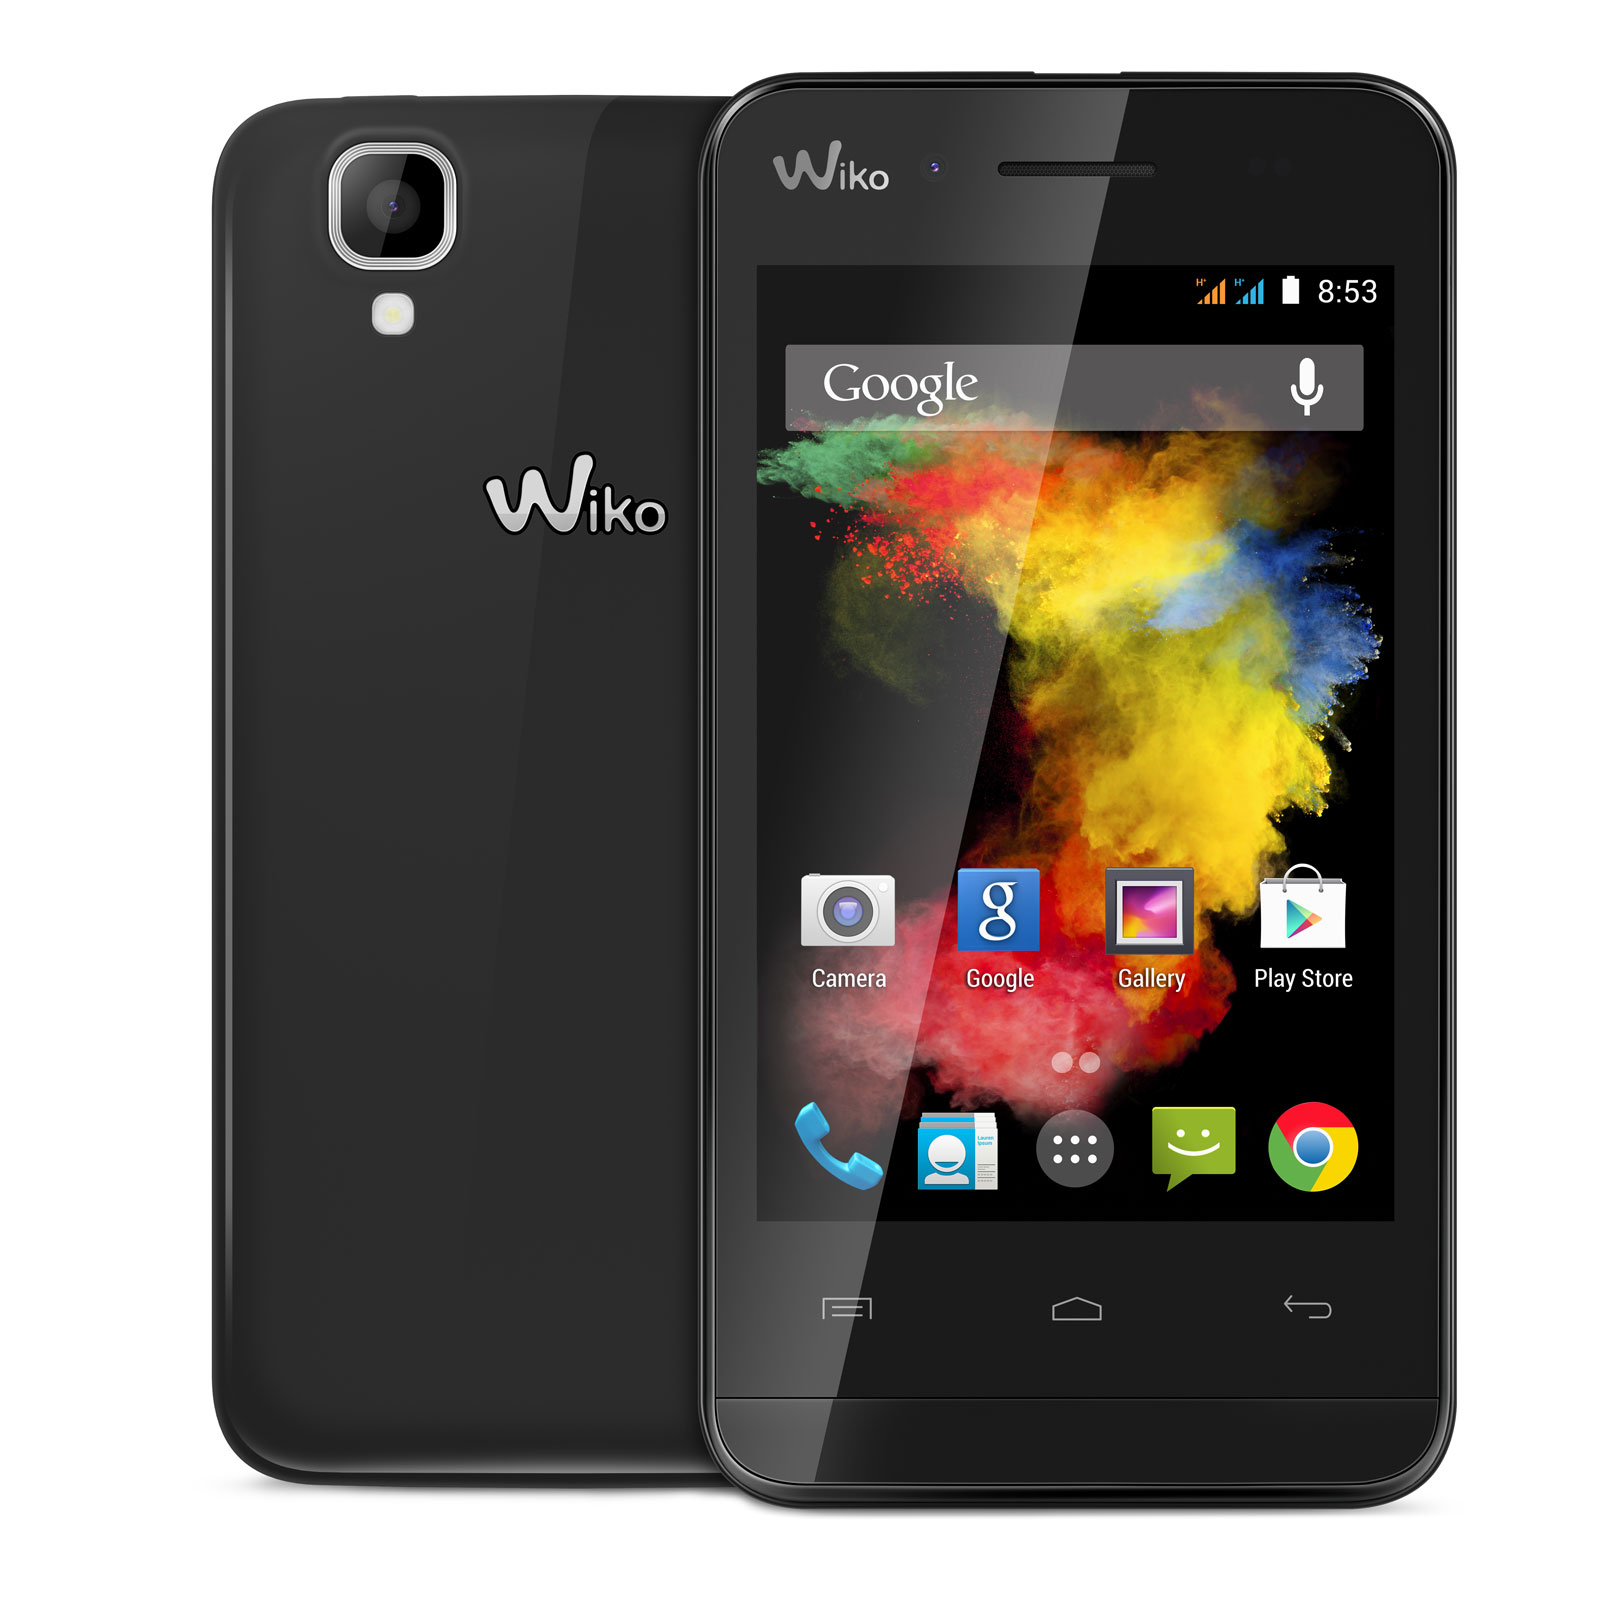 wiko goa noir mobile smartphone wiko sur. Black Bedroom Furniture Sets. Home Design Ideas